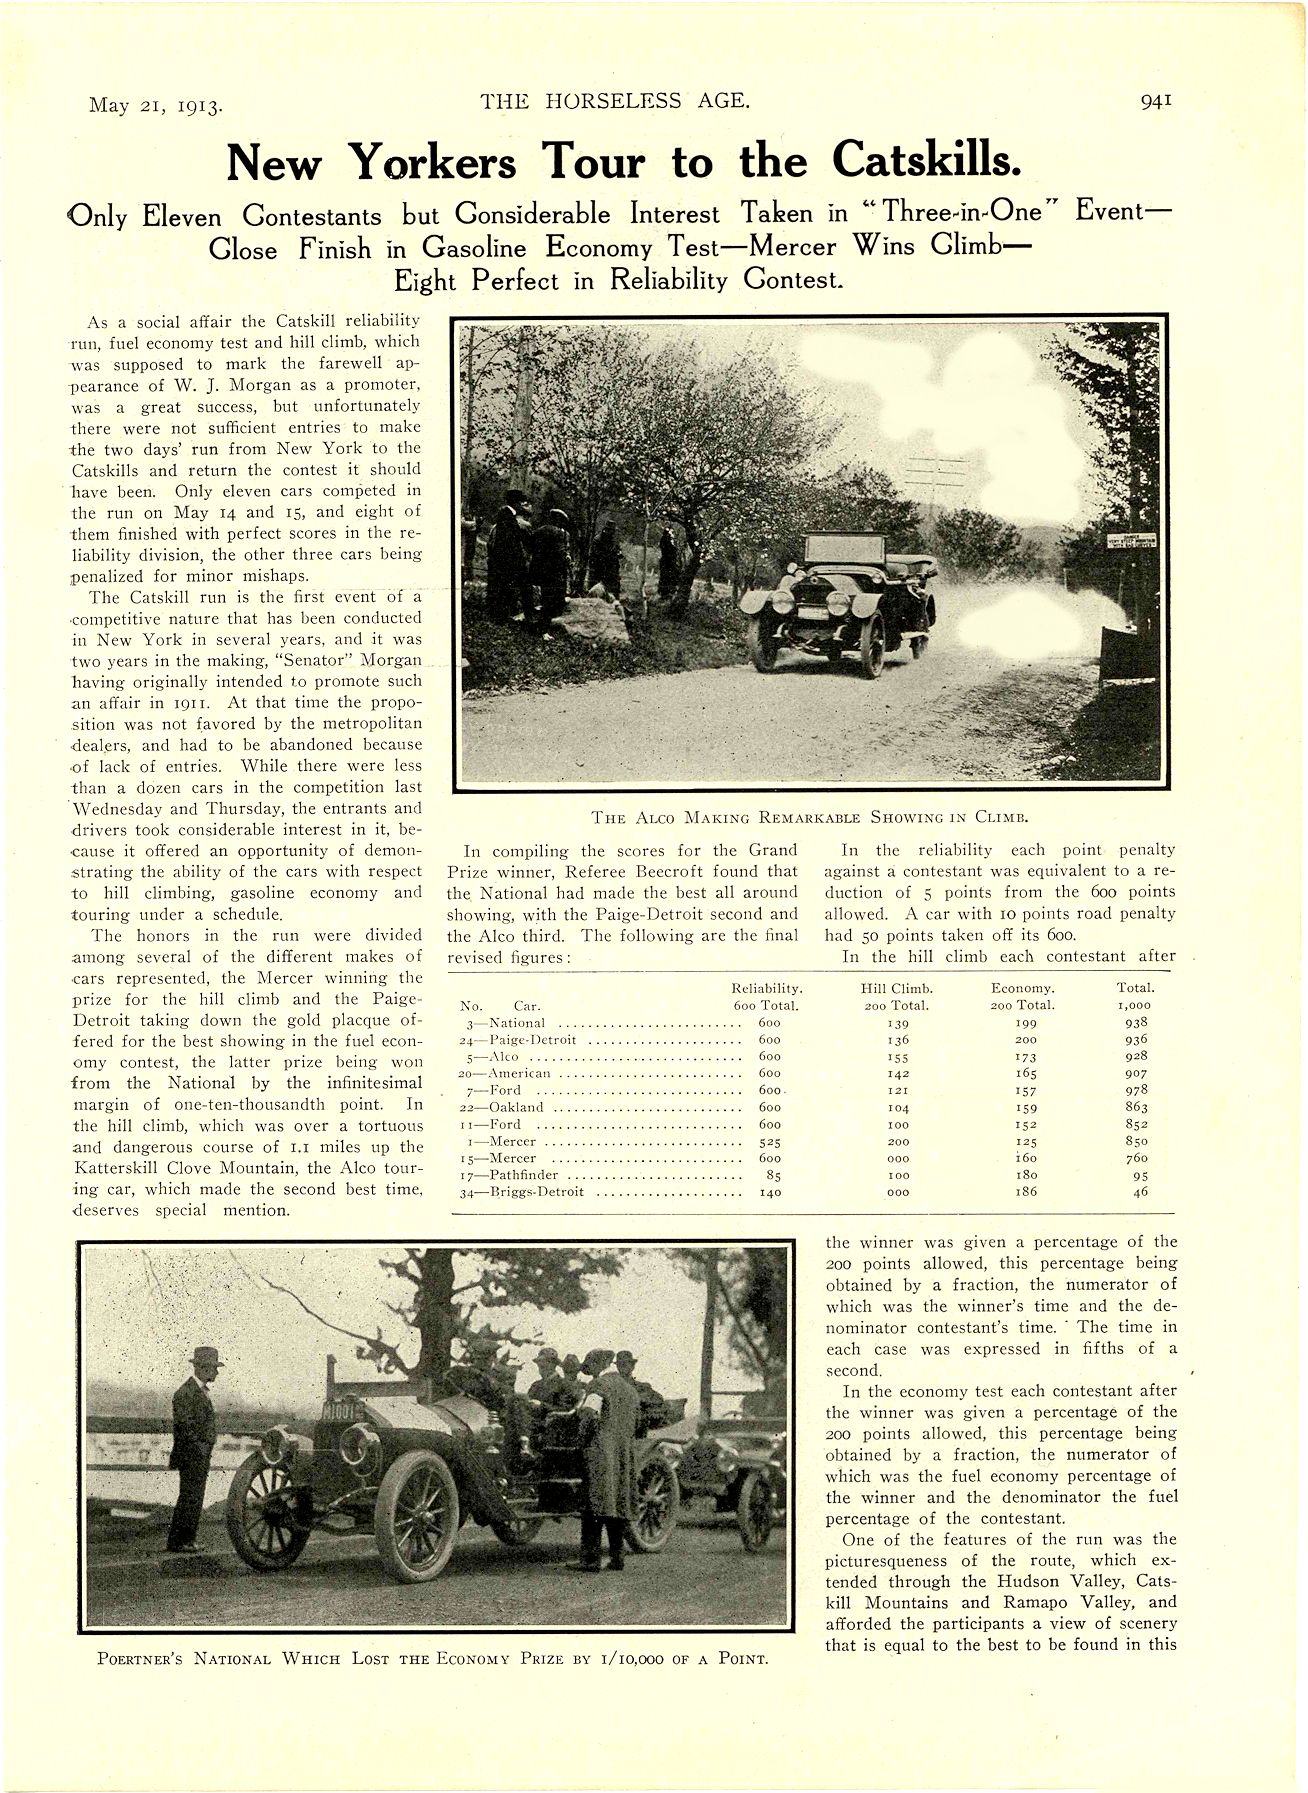 """1913 5 21 NATIONAL Article National """"SIX"""" $2375 New Yorkers Tour to the Catskills National Motor Vehicle Co. Indianapolis, IND THE HORSELESS AGE May 21, 1913 8.5″x12″ page 941"""